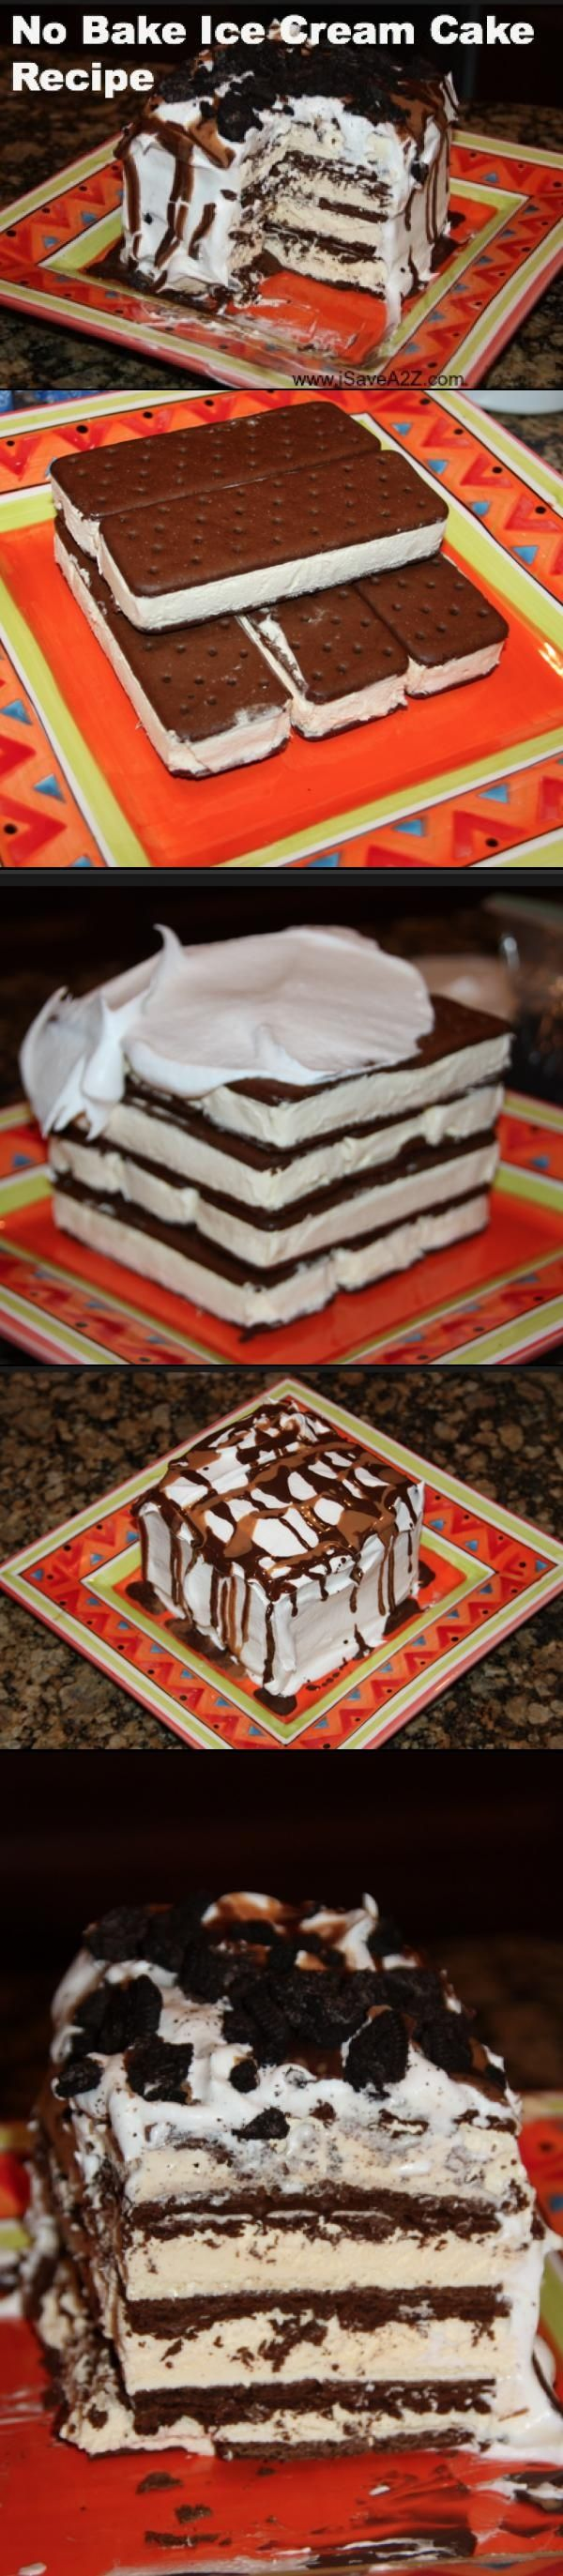 DIY No Bake Ice Cream Cake... wow that was easy